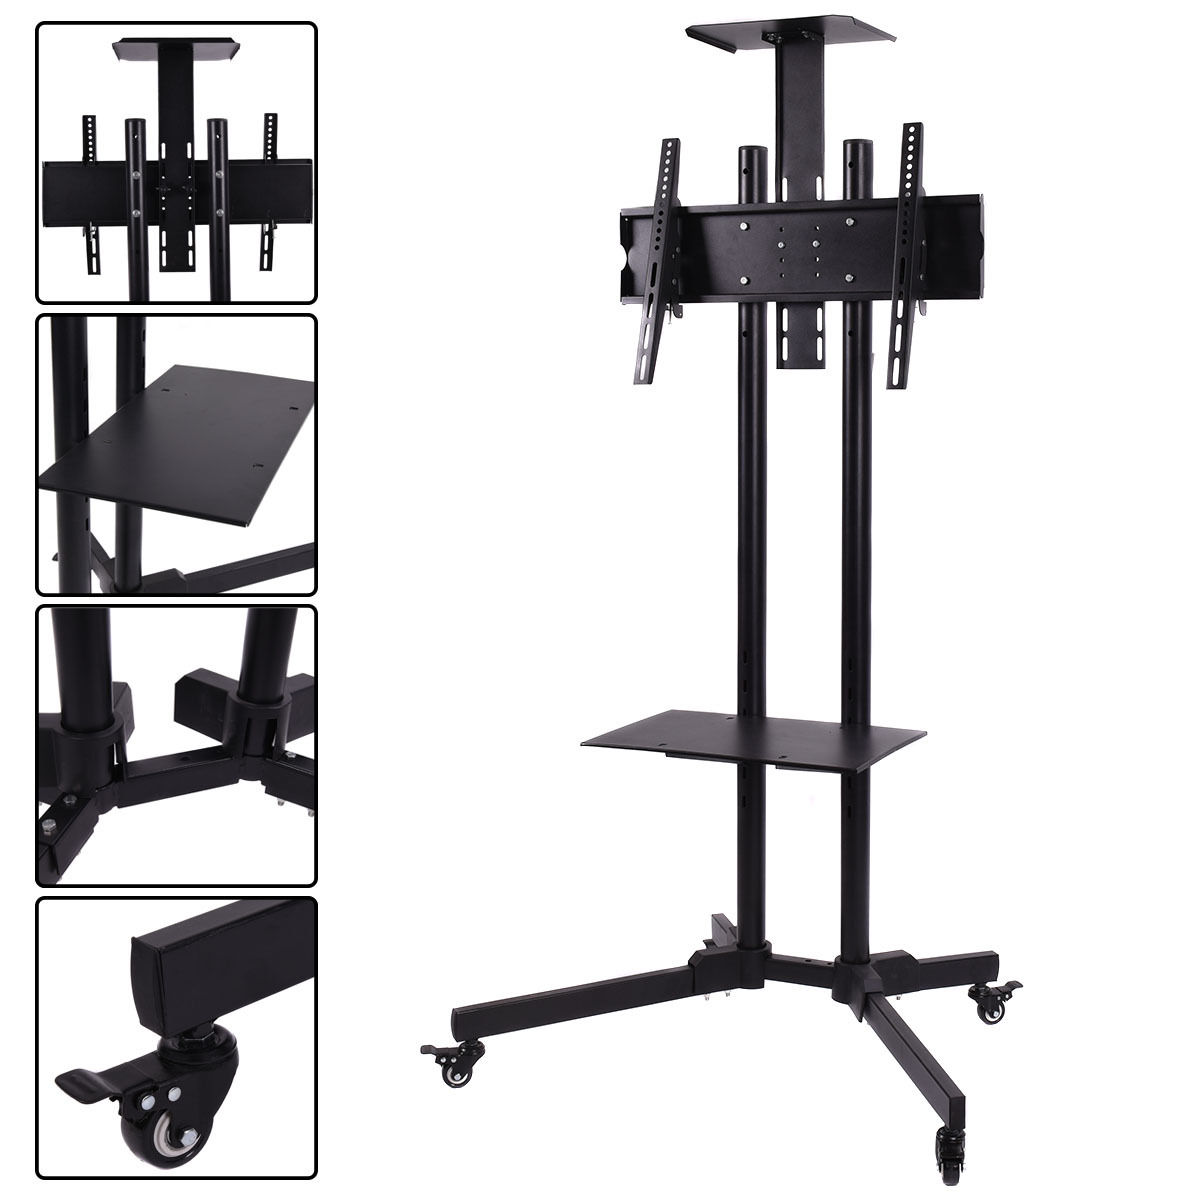 Costway TV Cart Stand Plasma LCD LED Flat Screen Panel w/ Wheels Mobile Fits 32''to 55'''